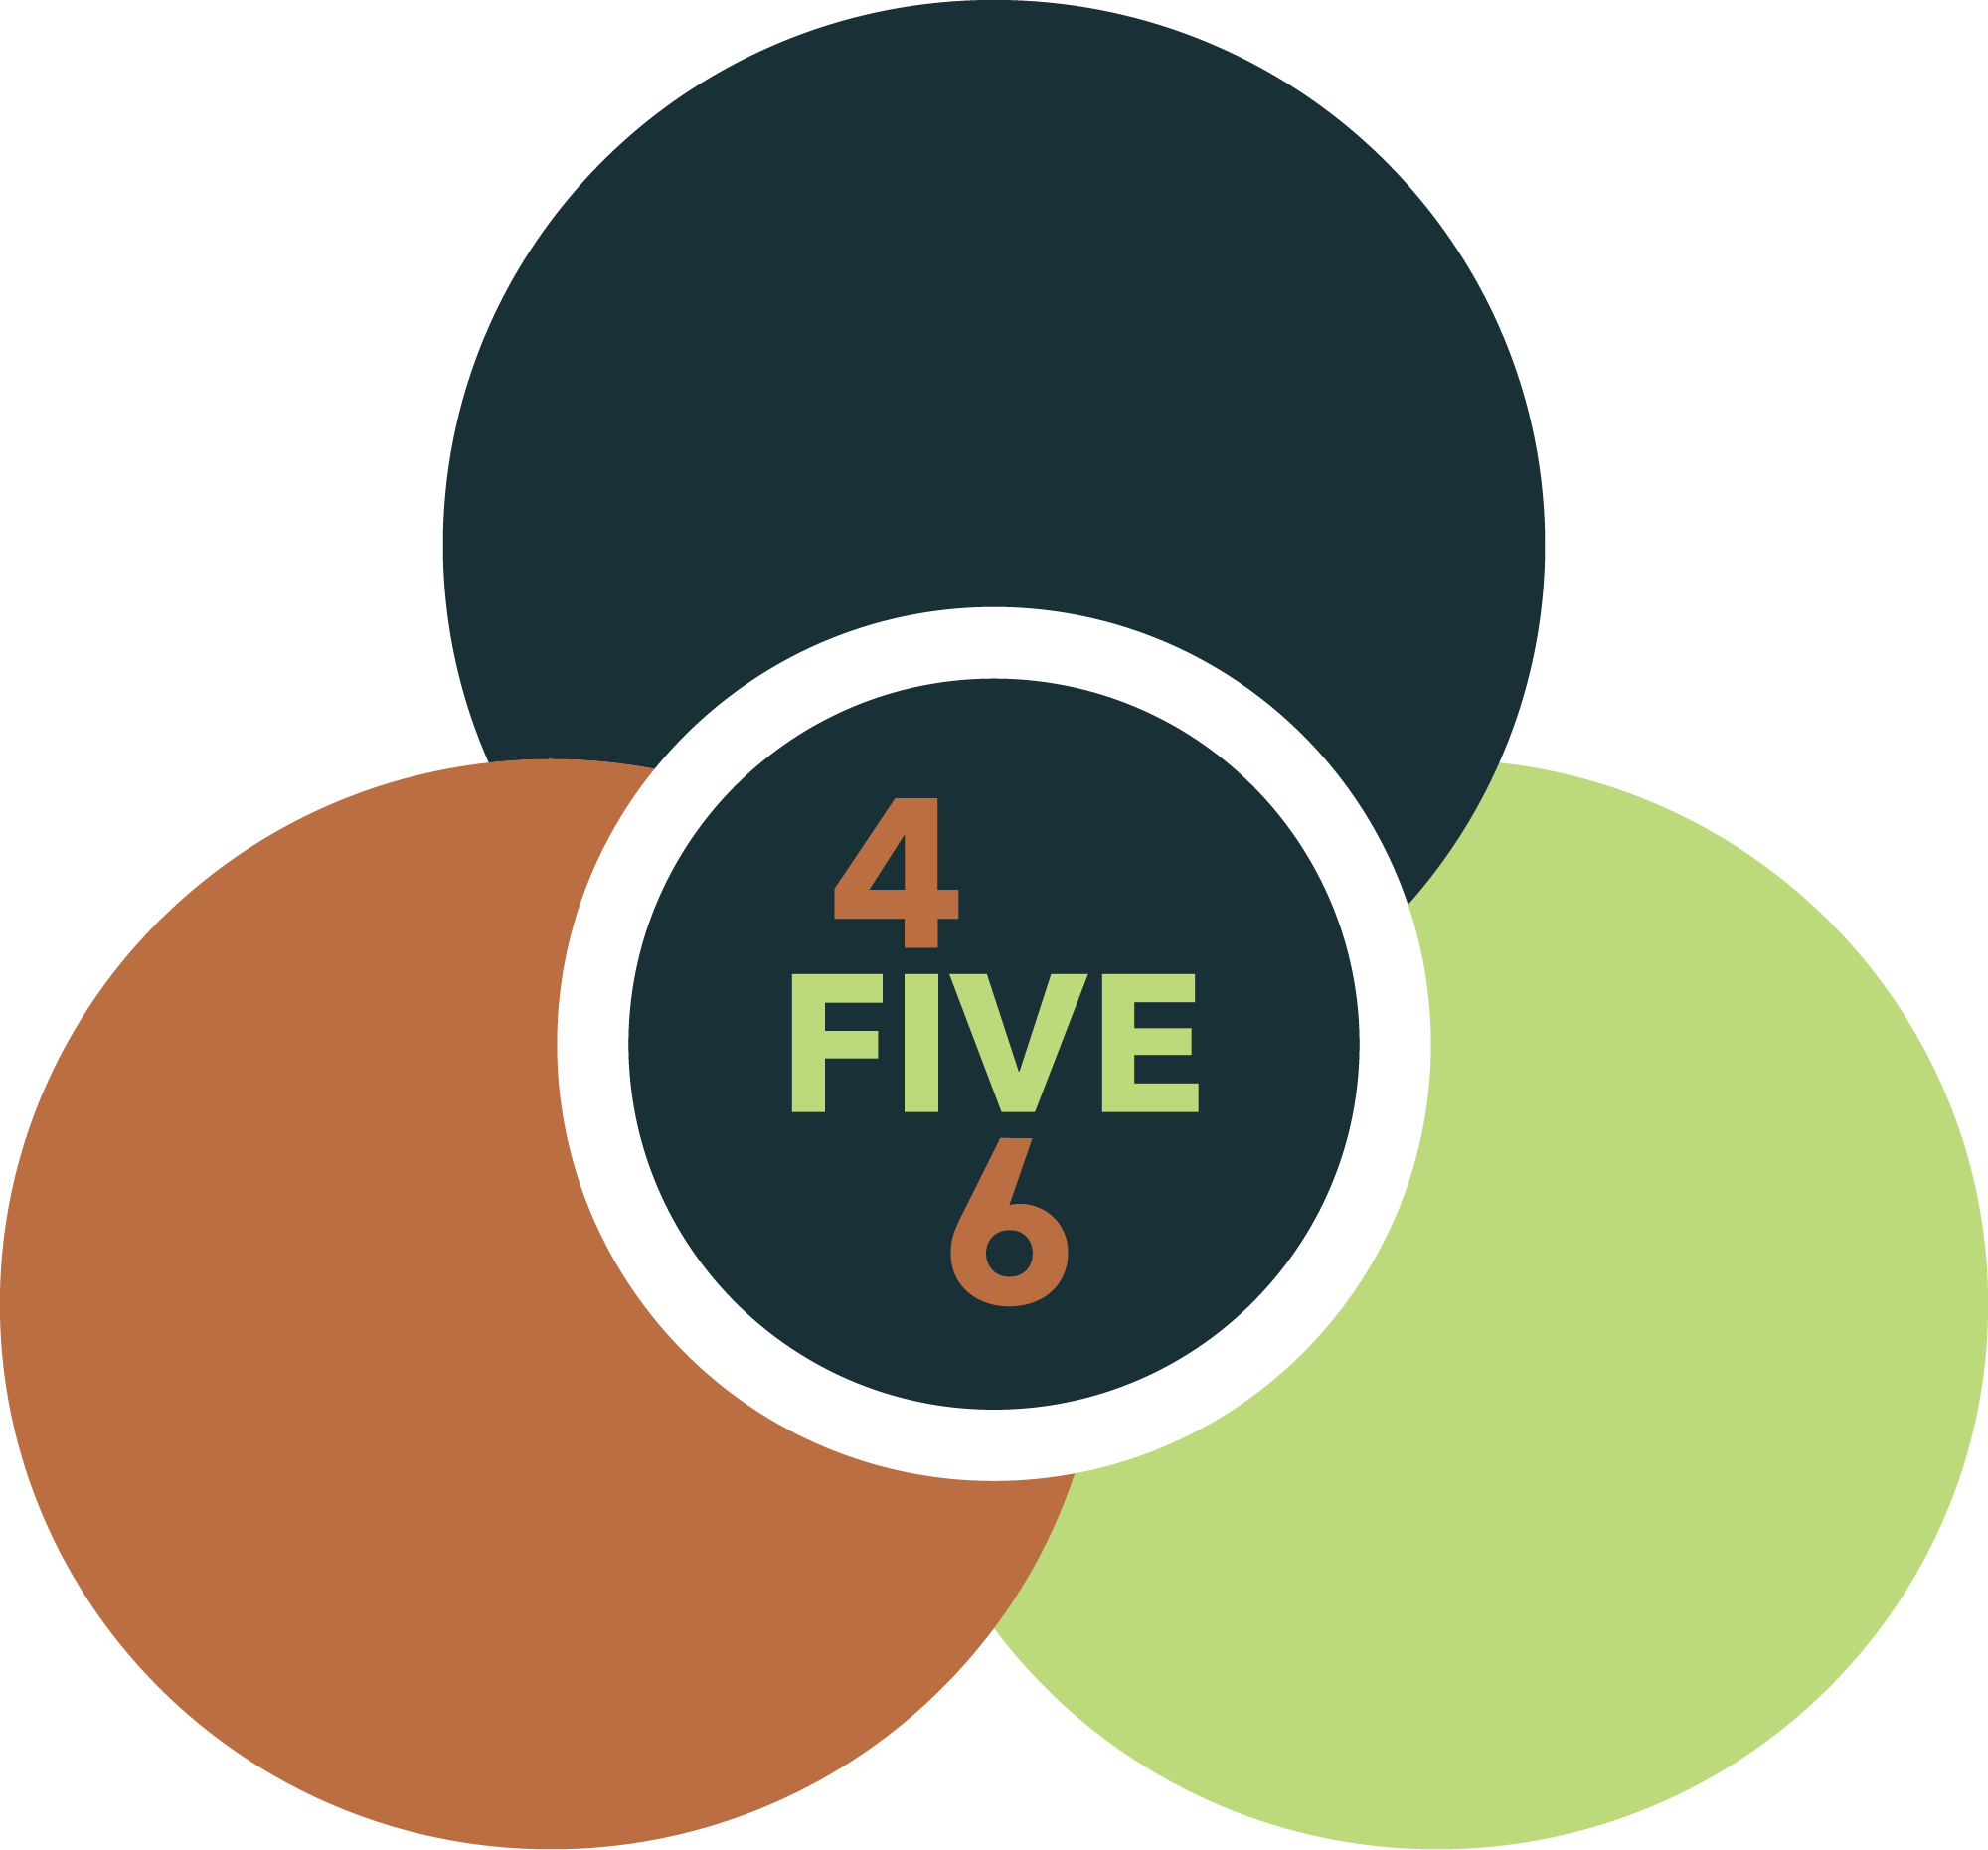 4FIVE6 Values